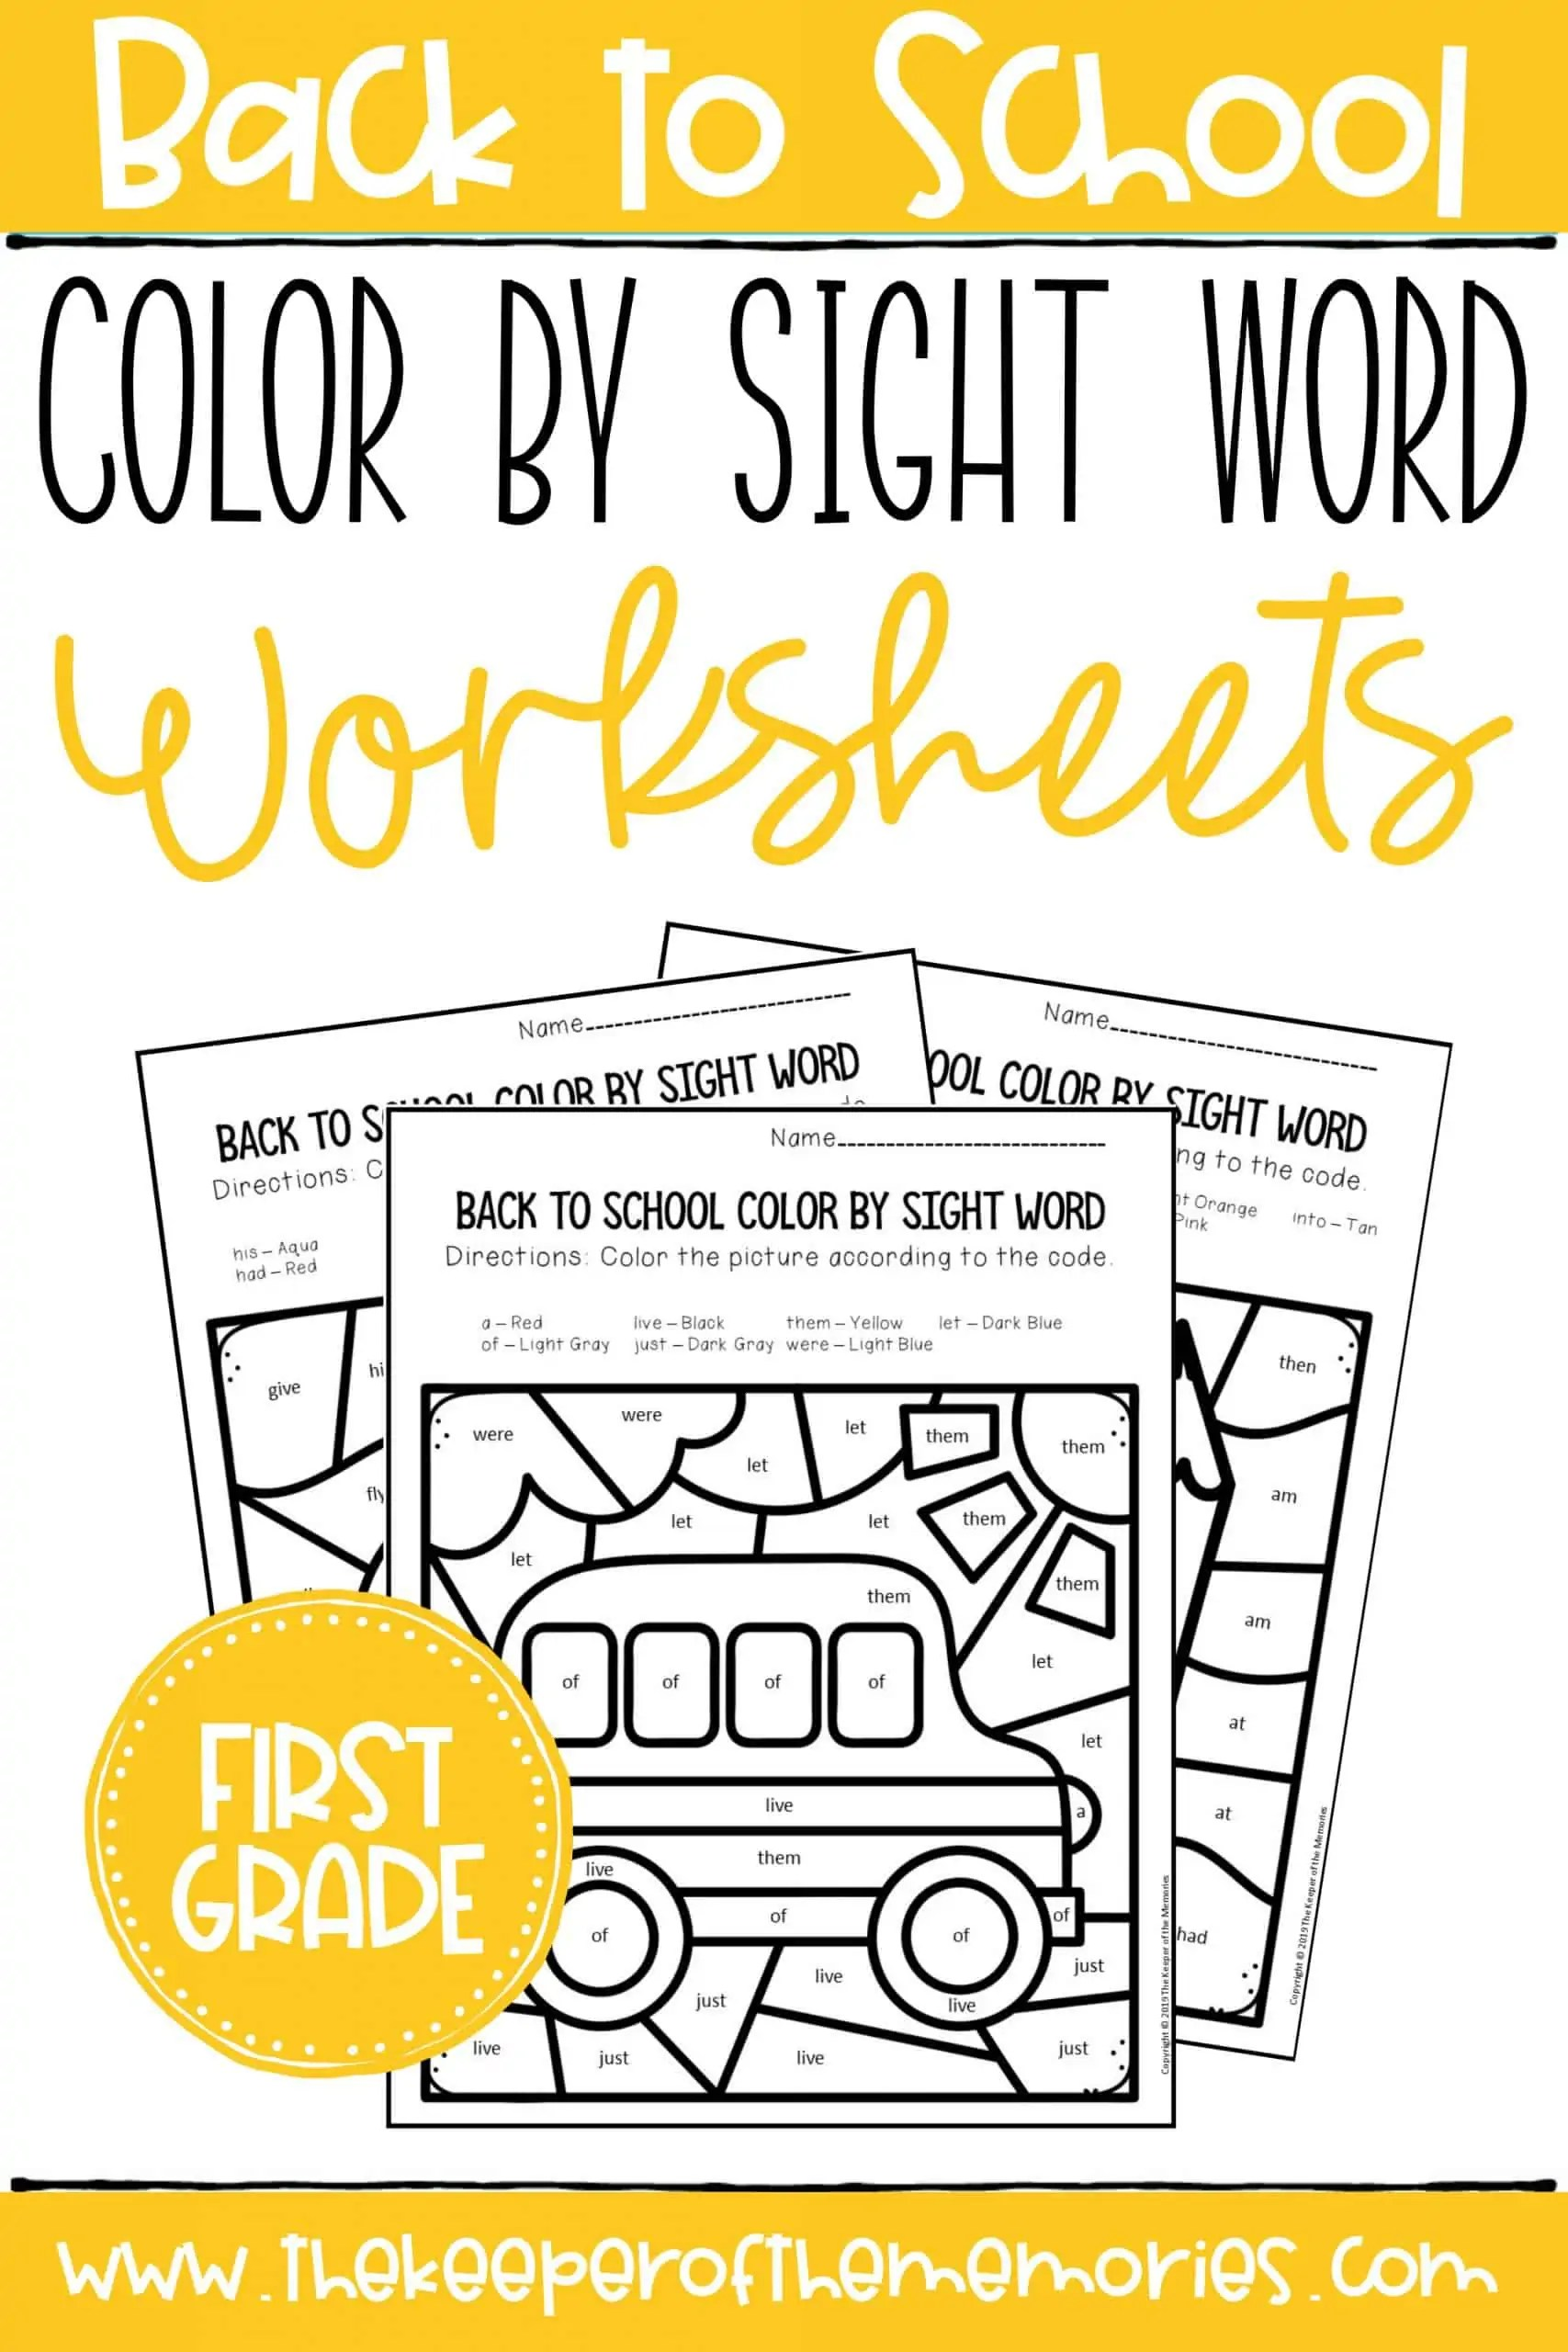 hight resolution of Color by Sight Word Back to School First Grade Worksheets